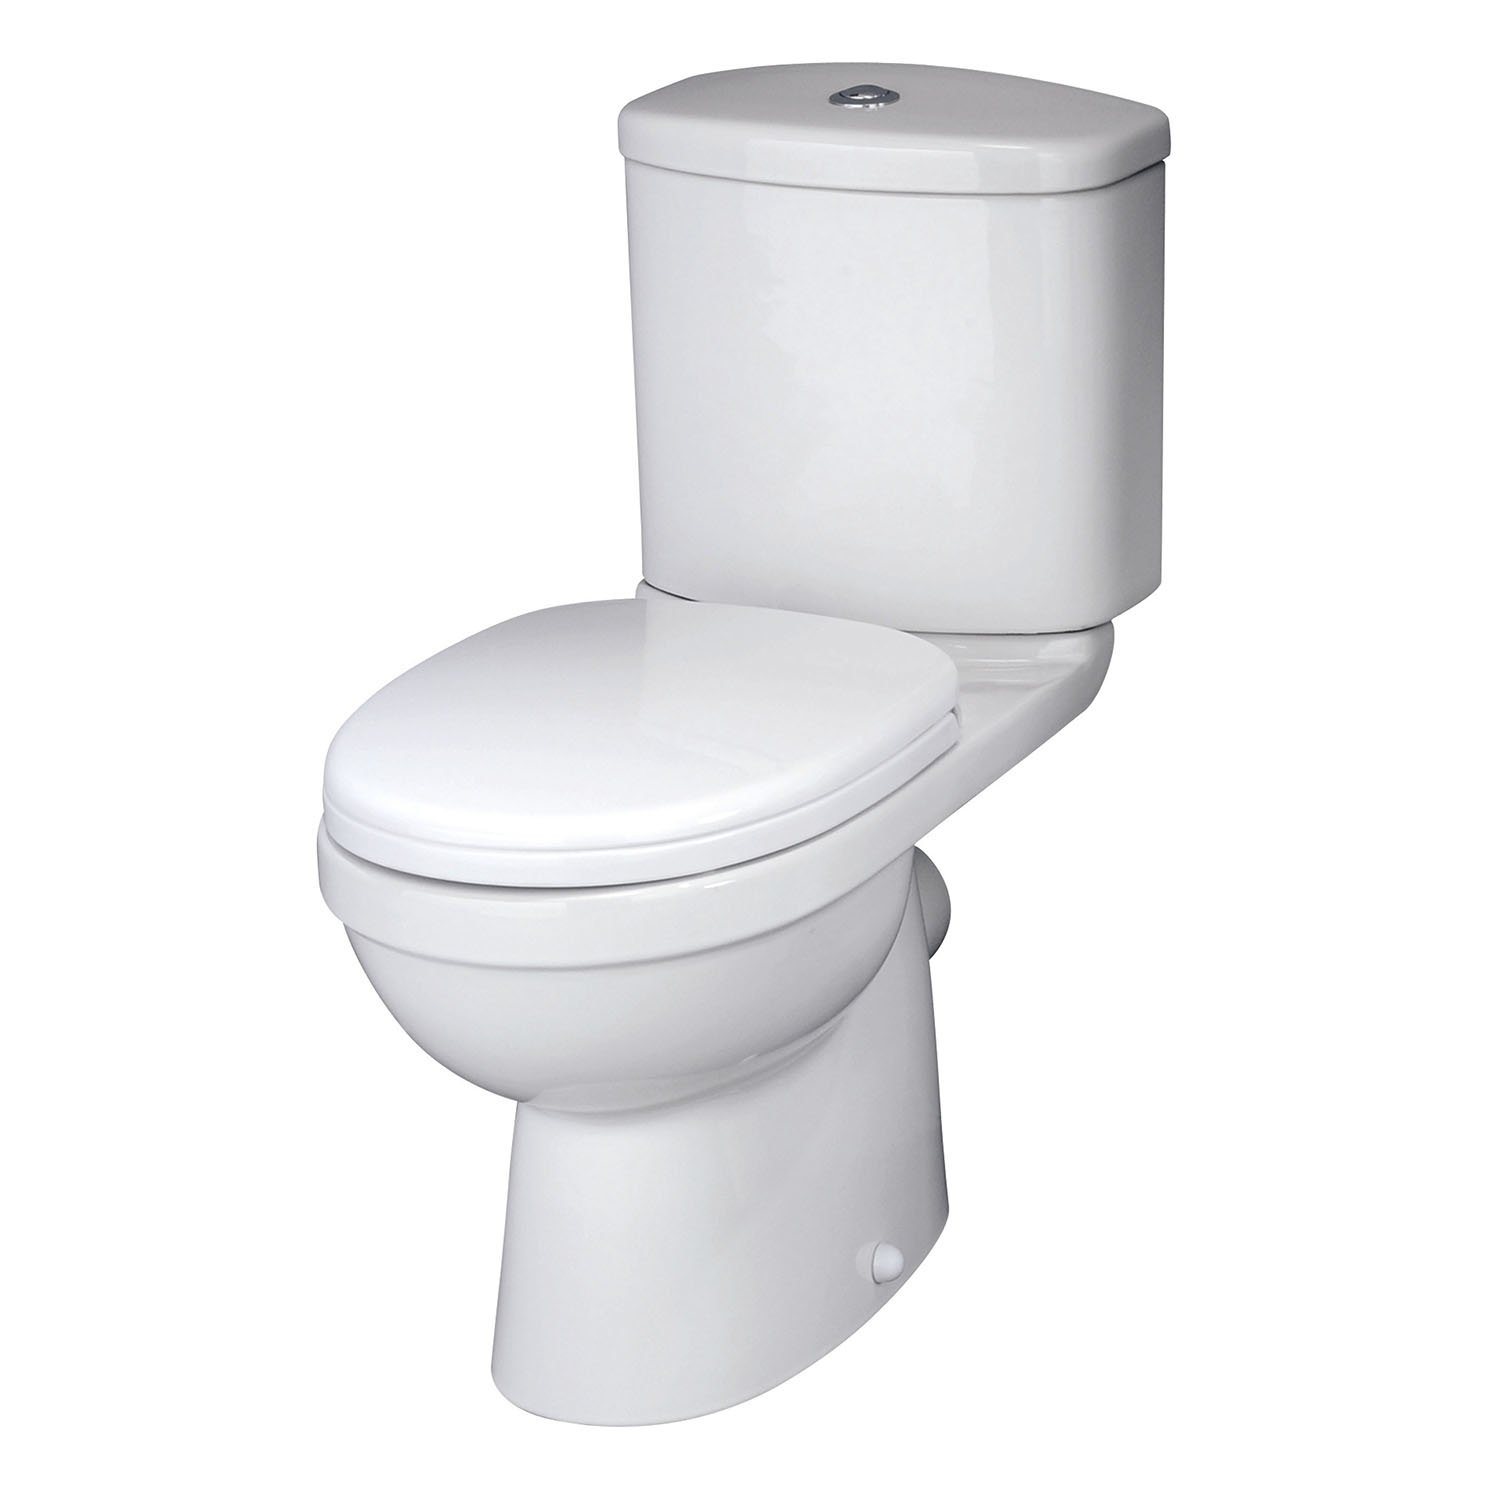 Premier NCS250 Ivo Pan/Cistern and Soft Close Seat - White